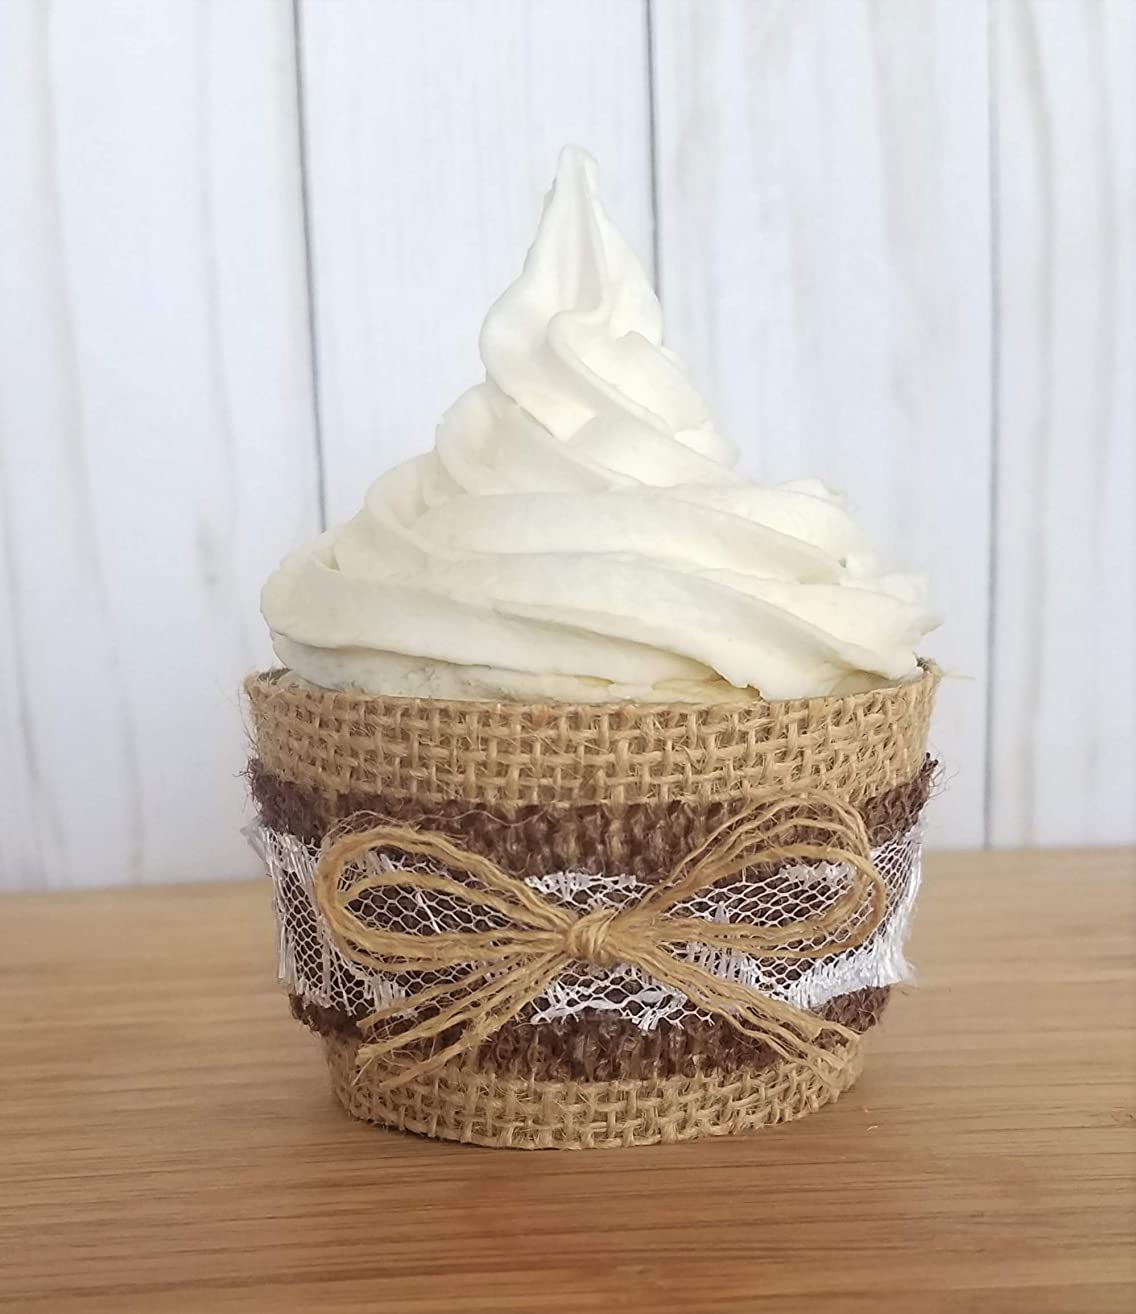 Burlap Cupcake Holders, Rustic Wedding Cupcake Wrappers, Burlap and Lace Cupcake Liners, Shabby Chic or Boho Baby Shower Cup Cake Sleeves Set of 12 Standard Size, Rustic Wedding Decorations